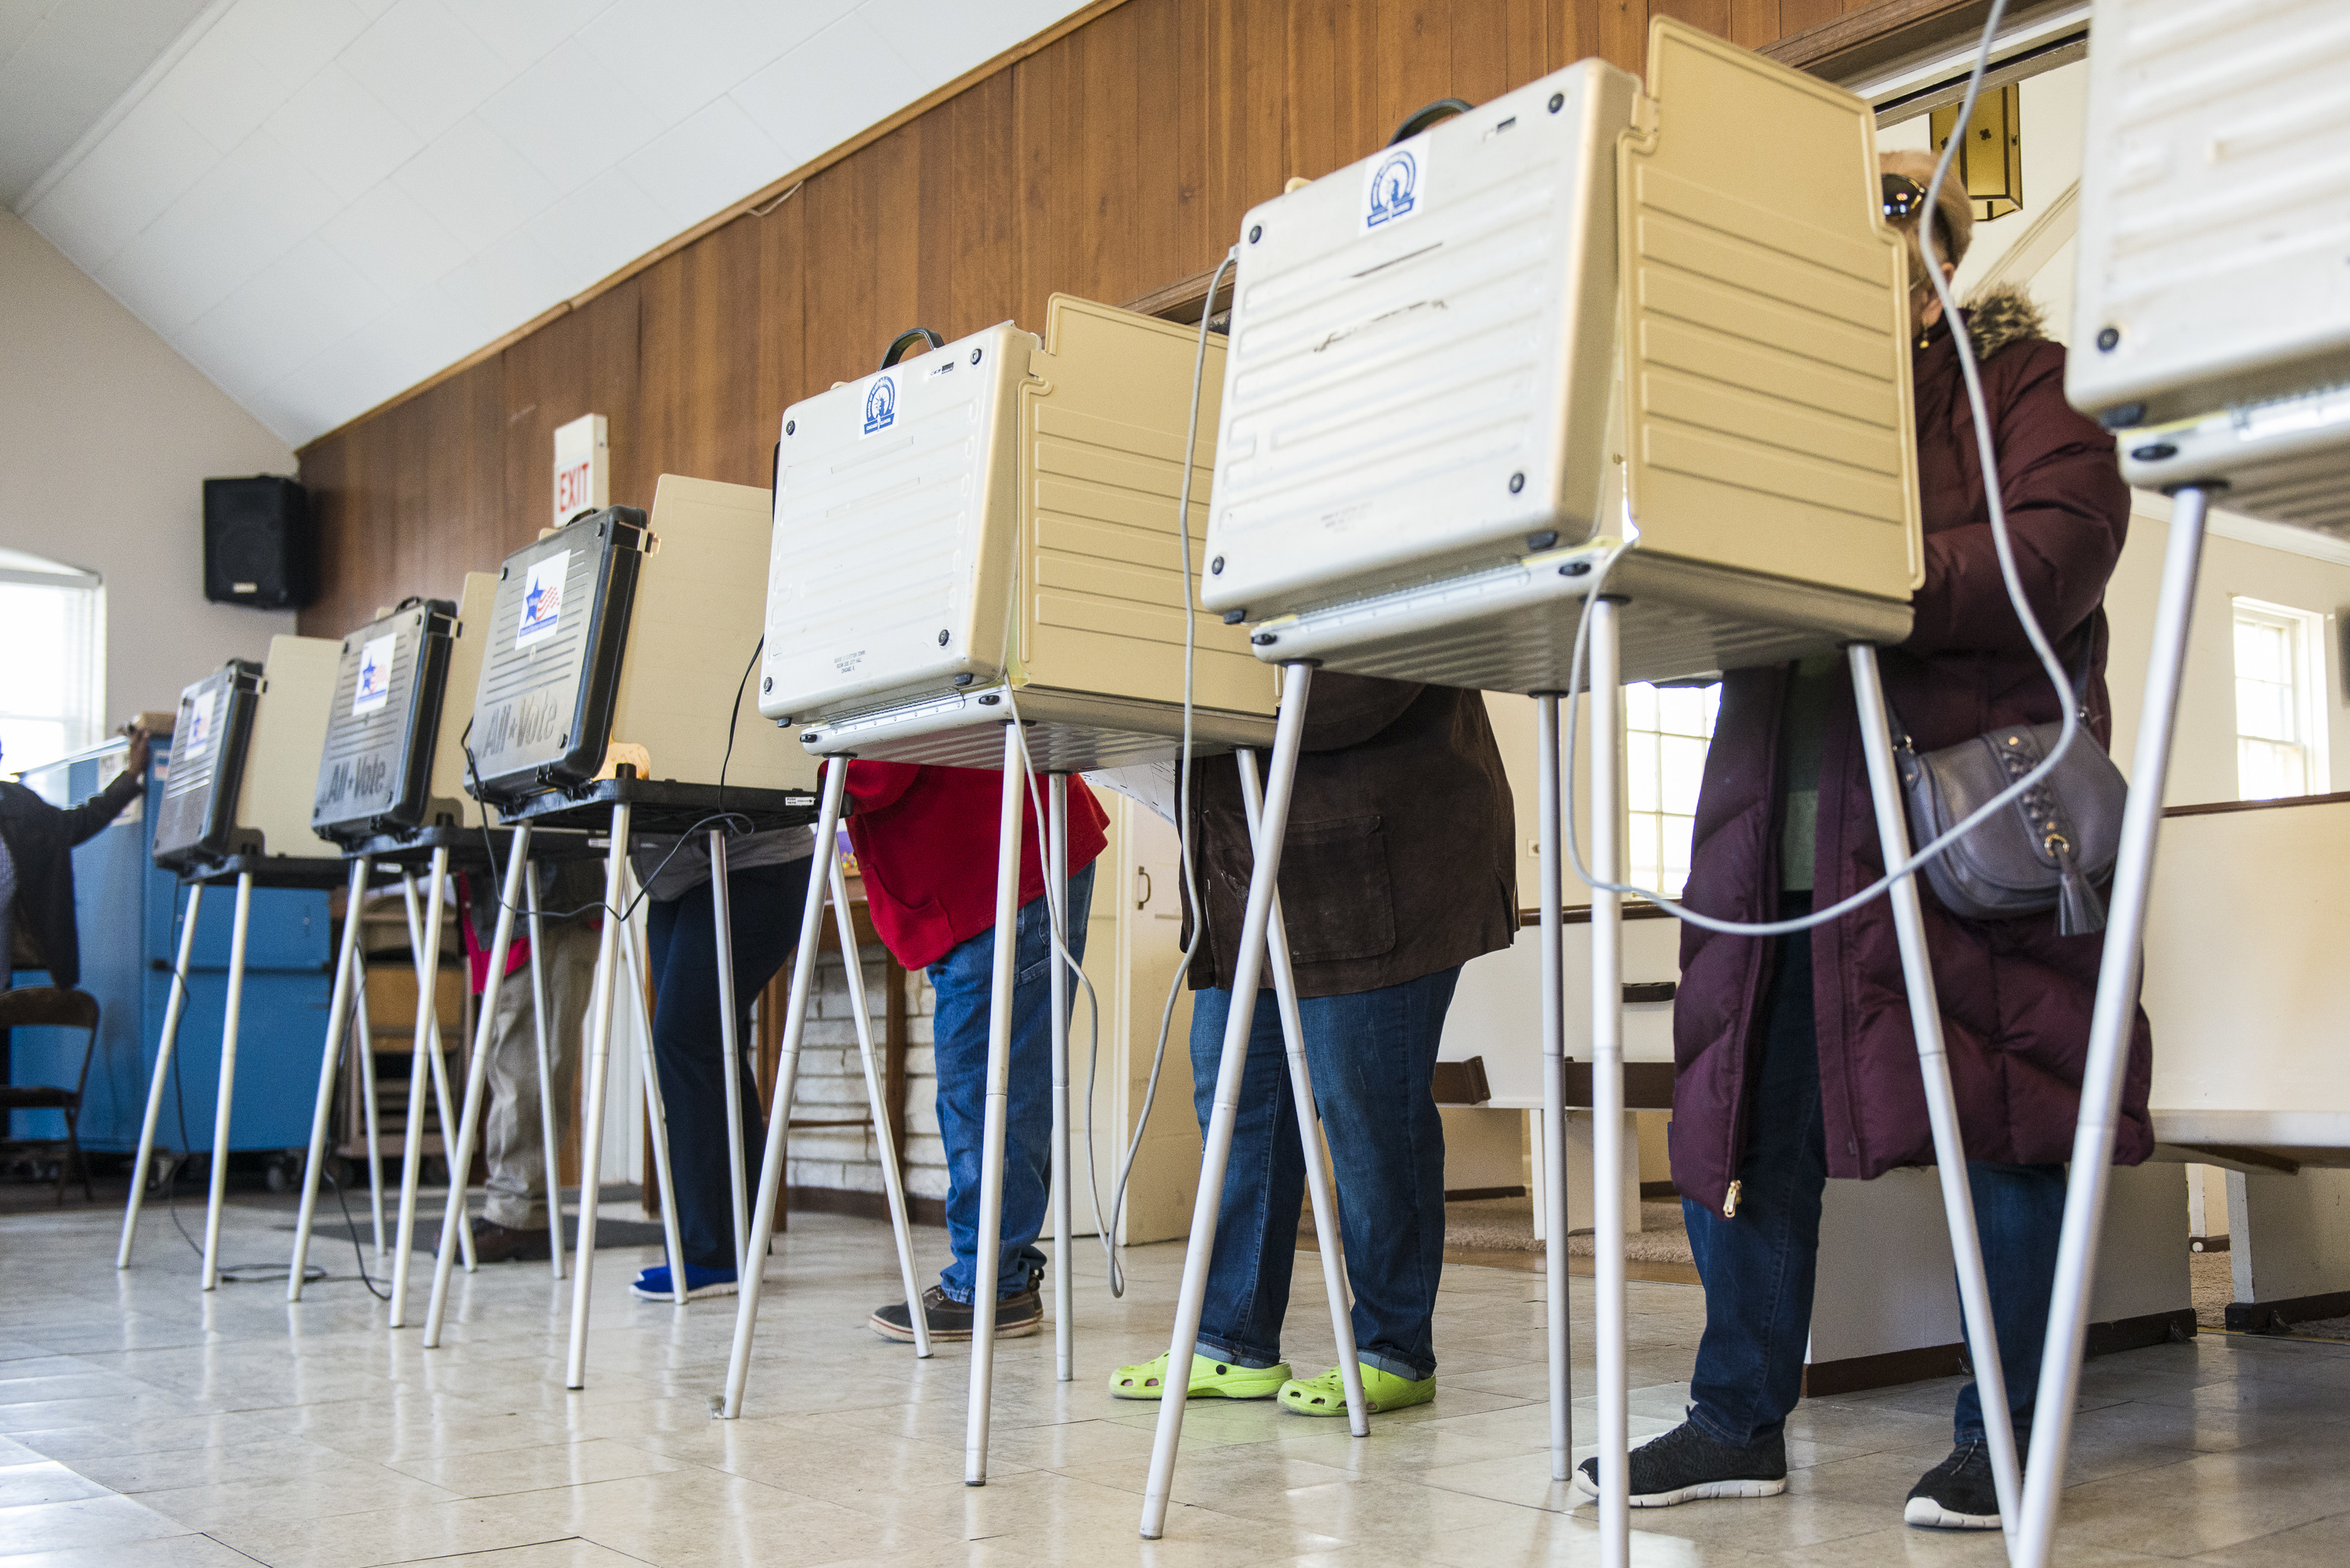 Voters cast their ballots at the Galewood Community United Church in the 29th Ward in March. Over 1 million people have requested to vote by mail in the November general election.